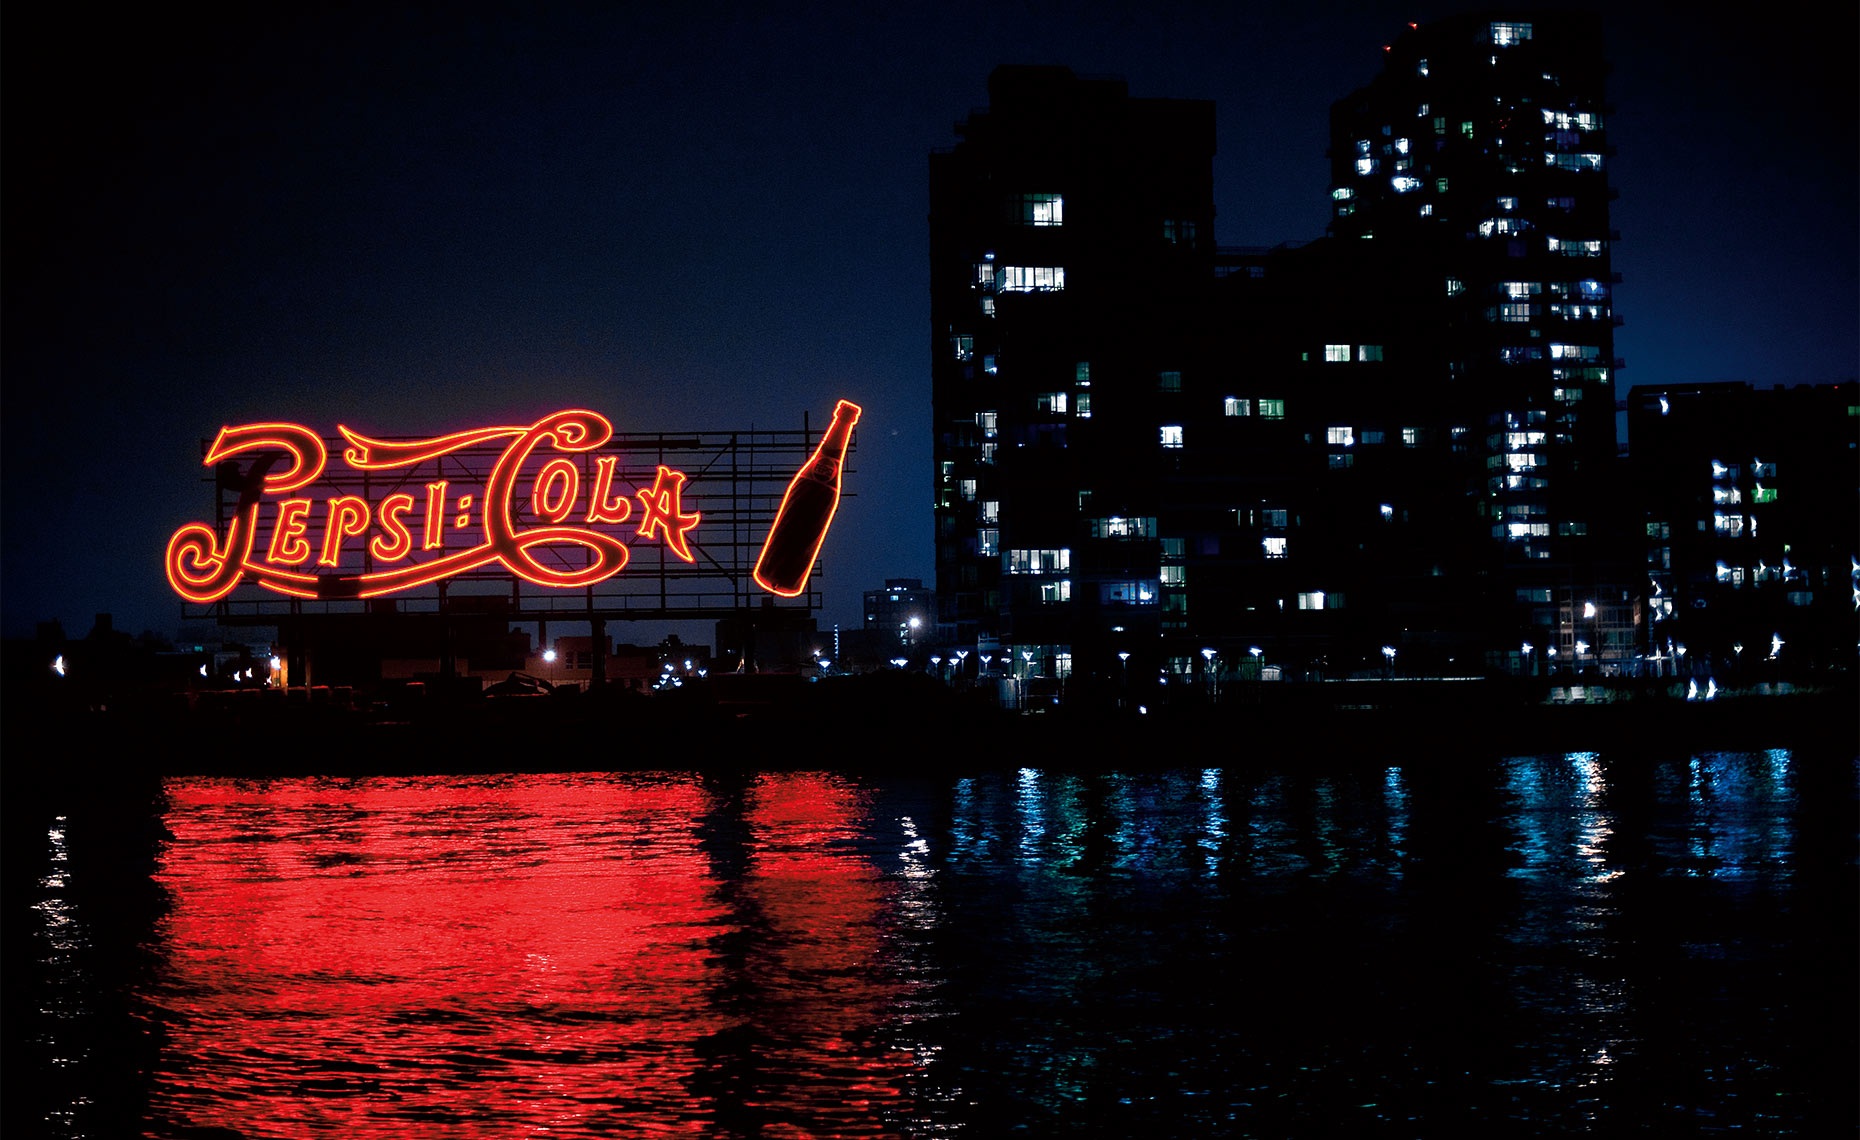 Pepsi Cola Sign, East River, New York City